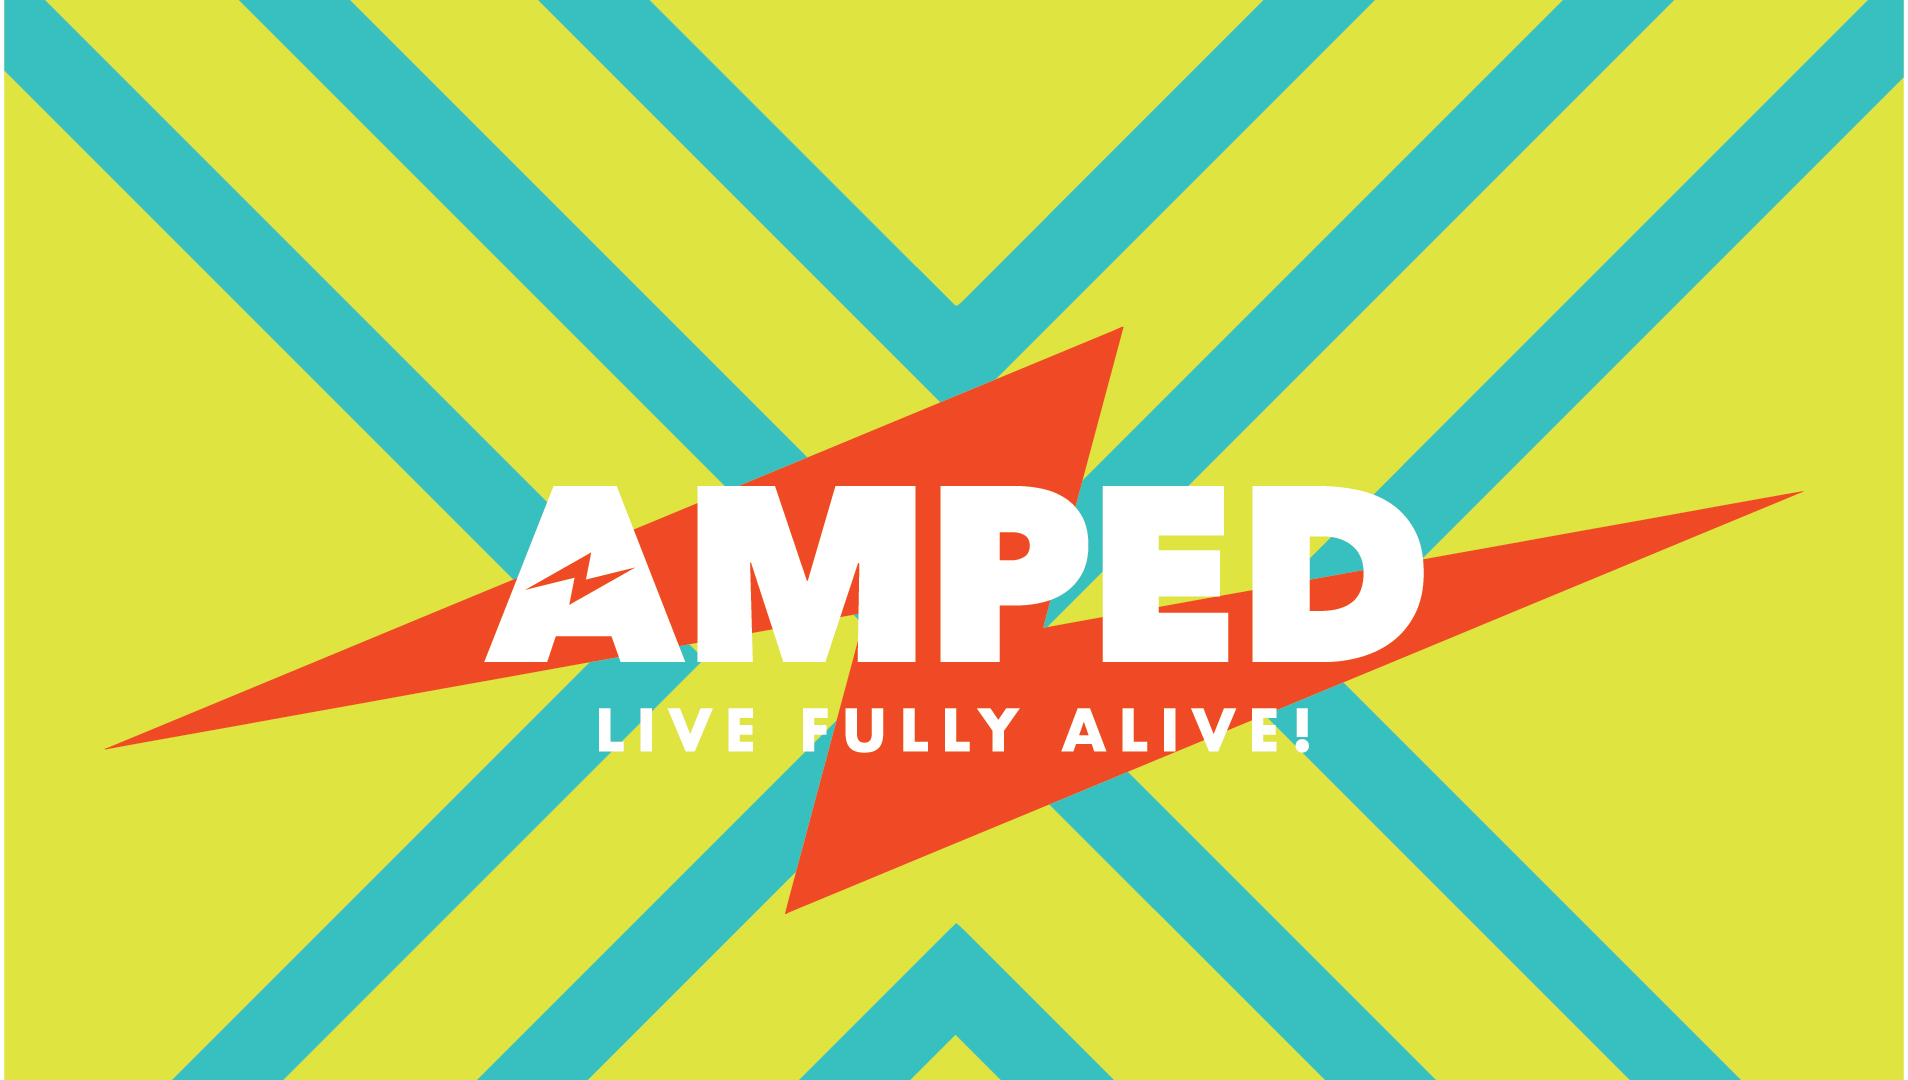 Amped VBS REC Camp Green Valley Baptist Church